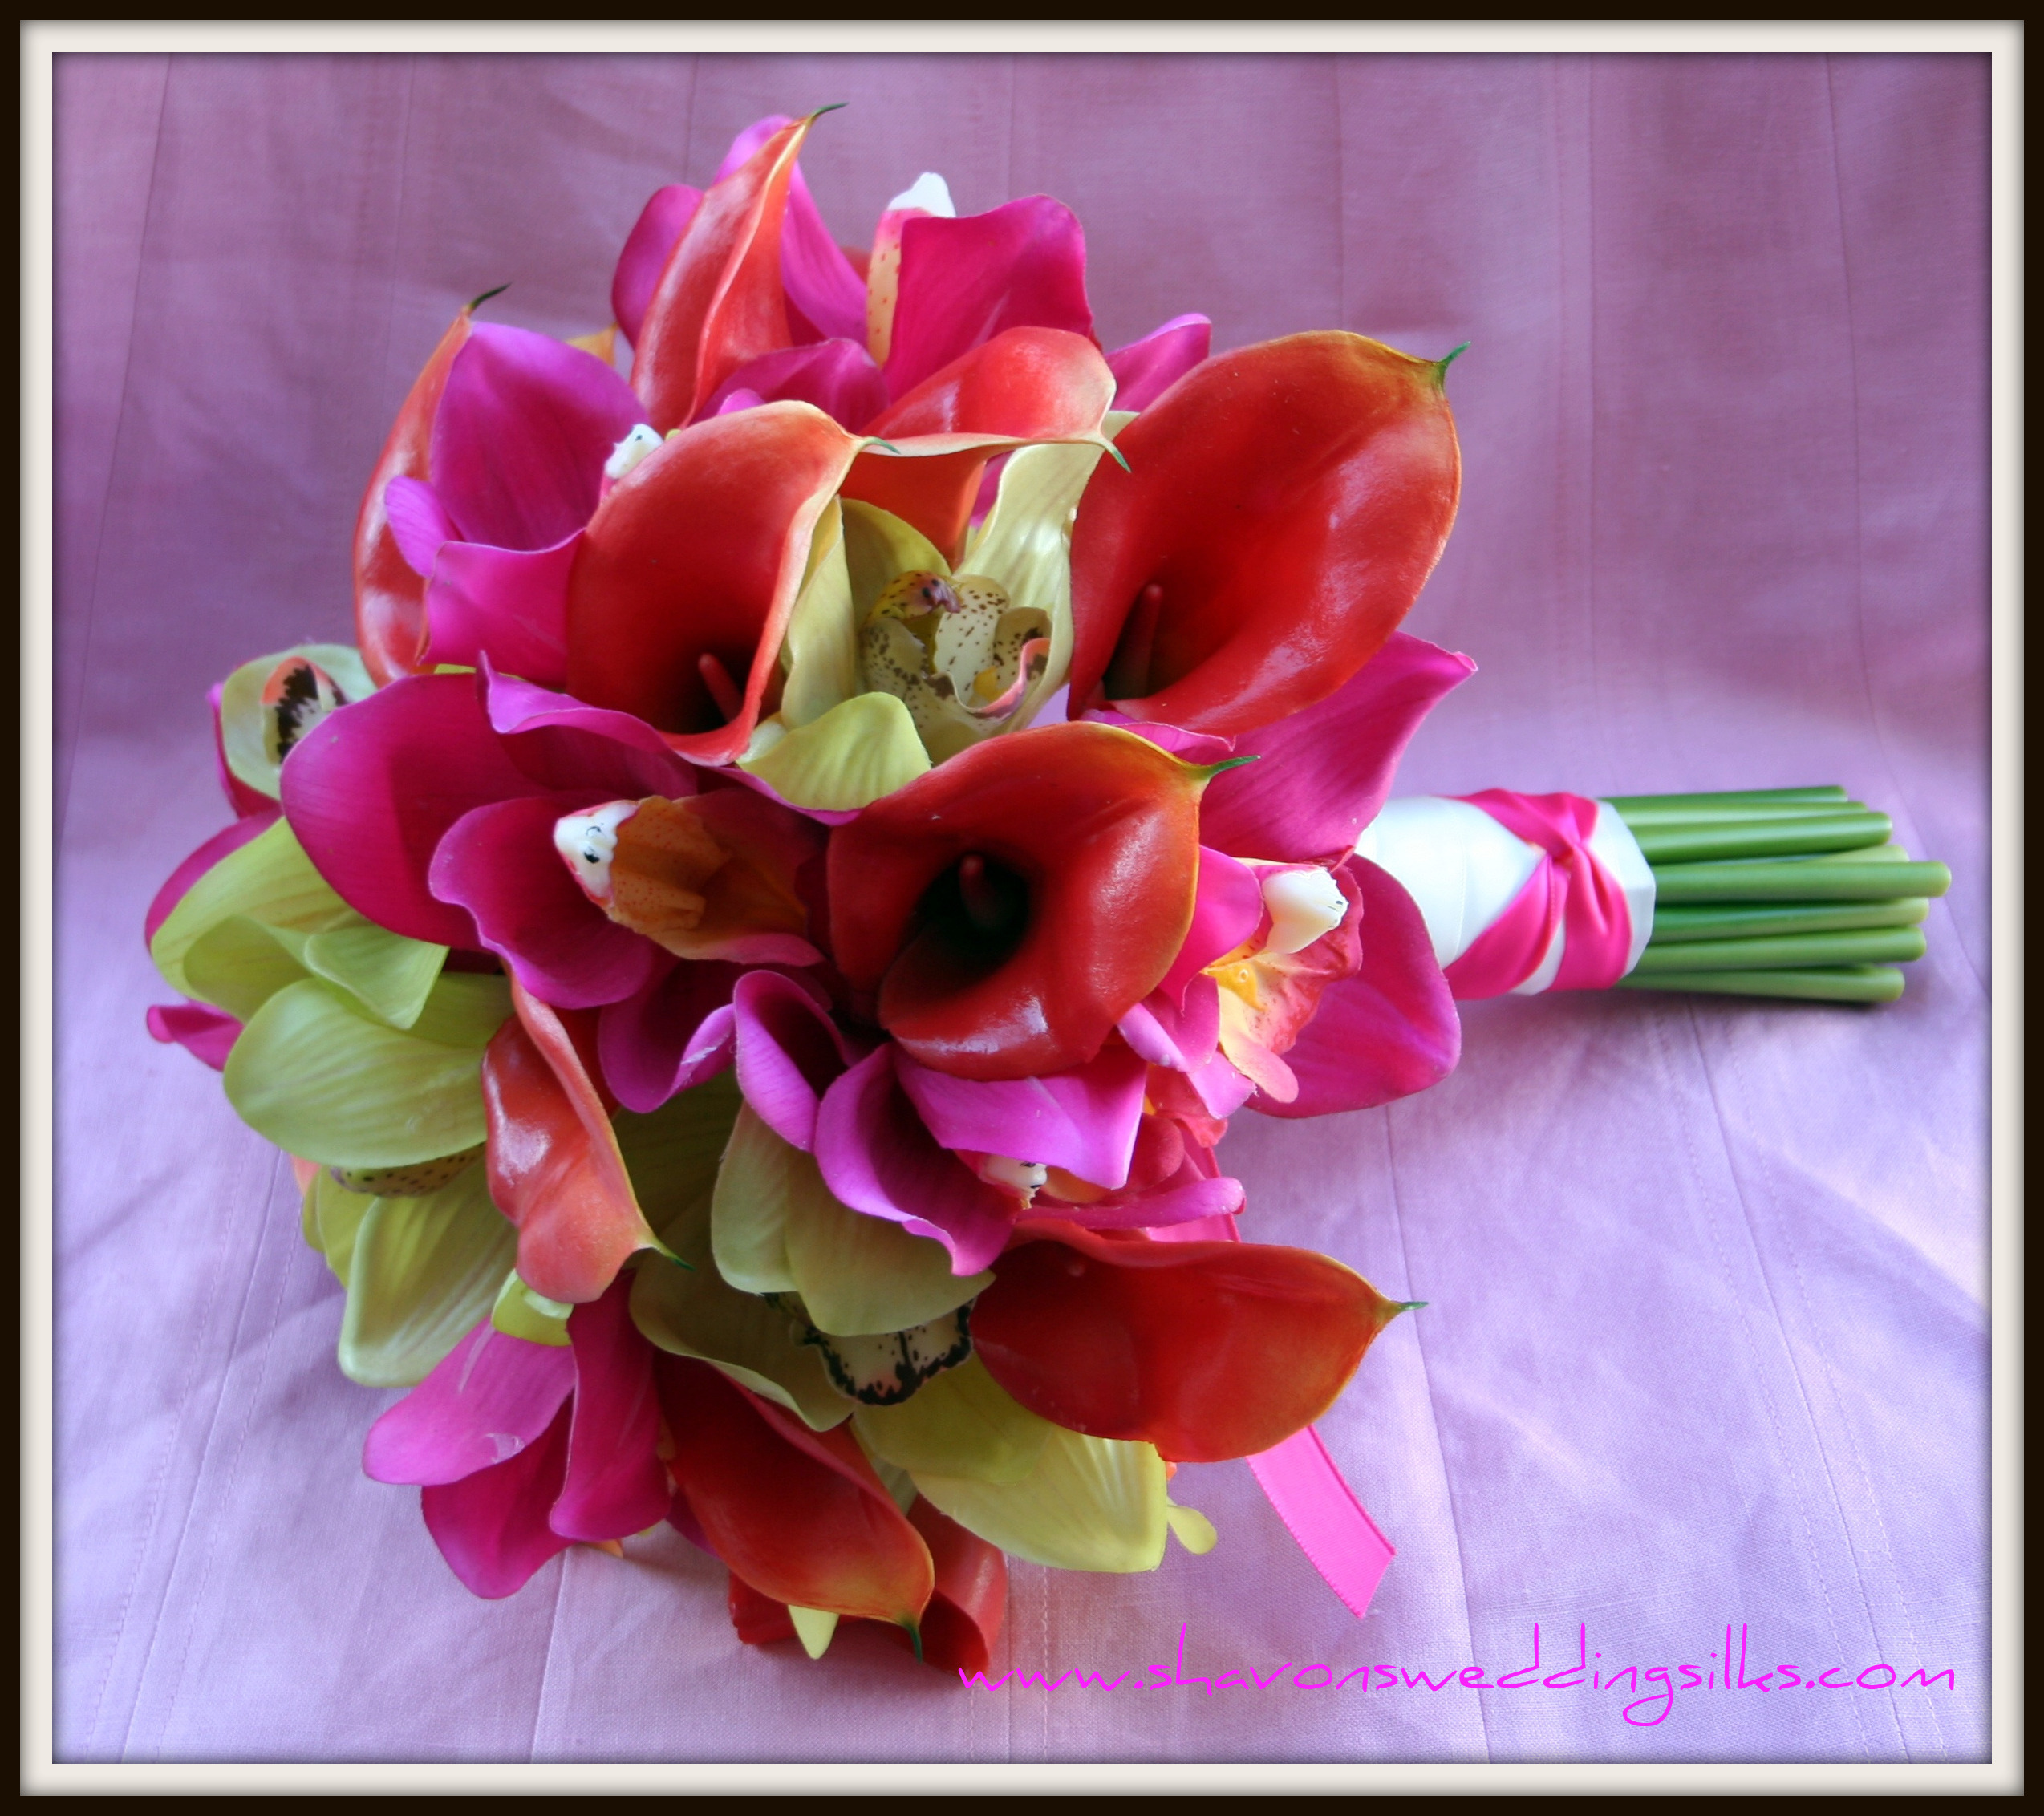 Ceremony, Inspiration, Flowers & Decor, Bridesmaids, Bridesmaids Dresses, Fashion, orange, pink, green, Ceremony Flowers, Bridesmaid Bouquets, Flowers, Wedding, Tropical, Calla, Lilies, Orchids, Bright, Board, Cymbidium, Fresh, Fuchsia, Touch, Shavons wedding silks, Real, Flower Wedding Dresses